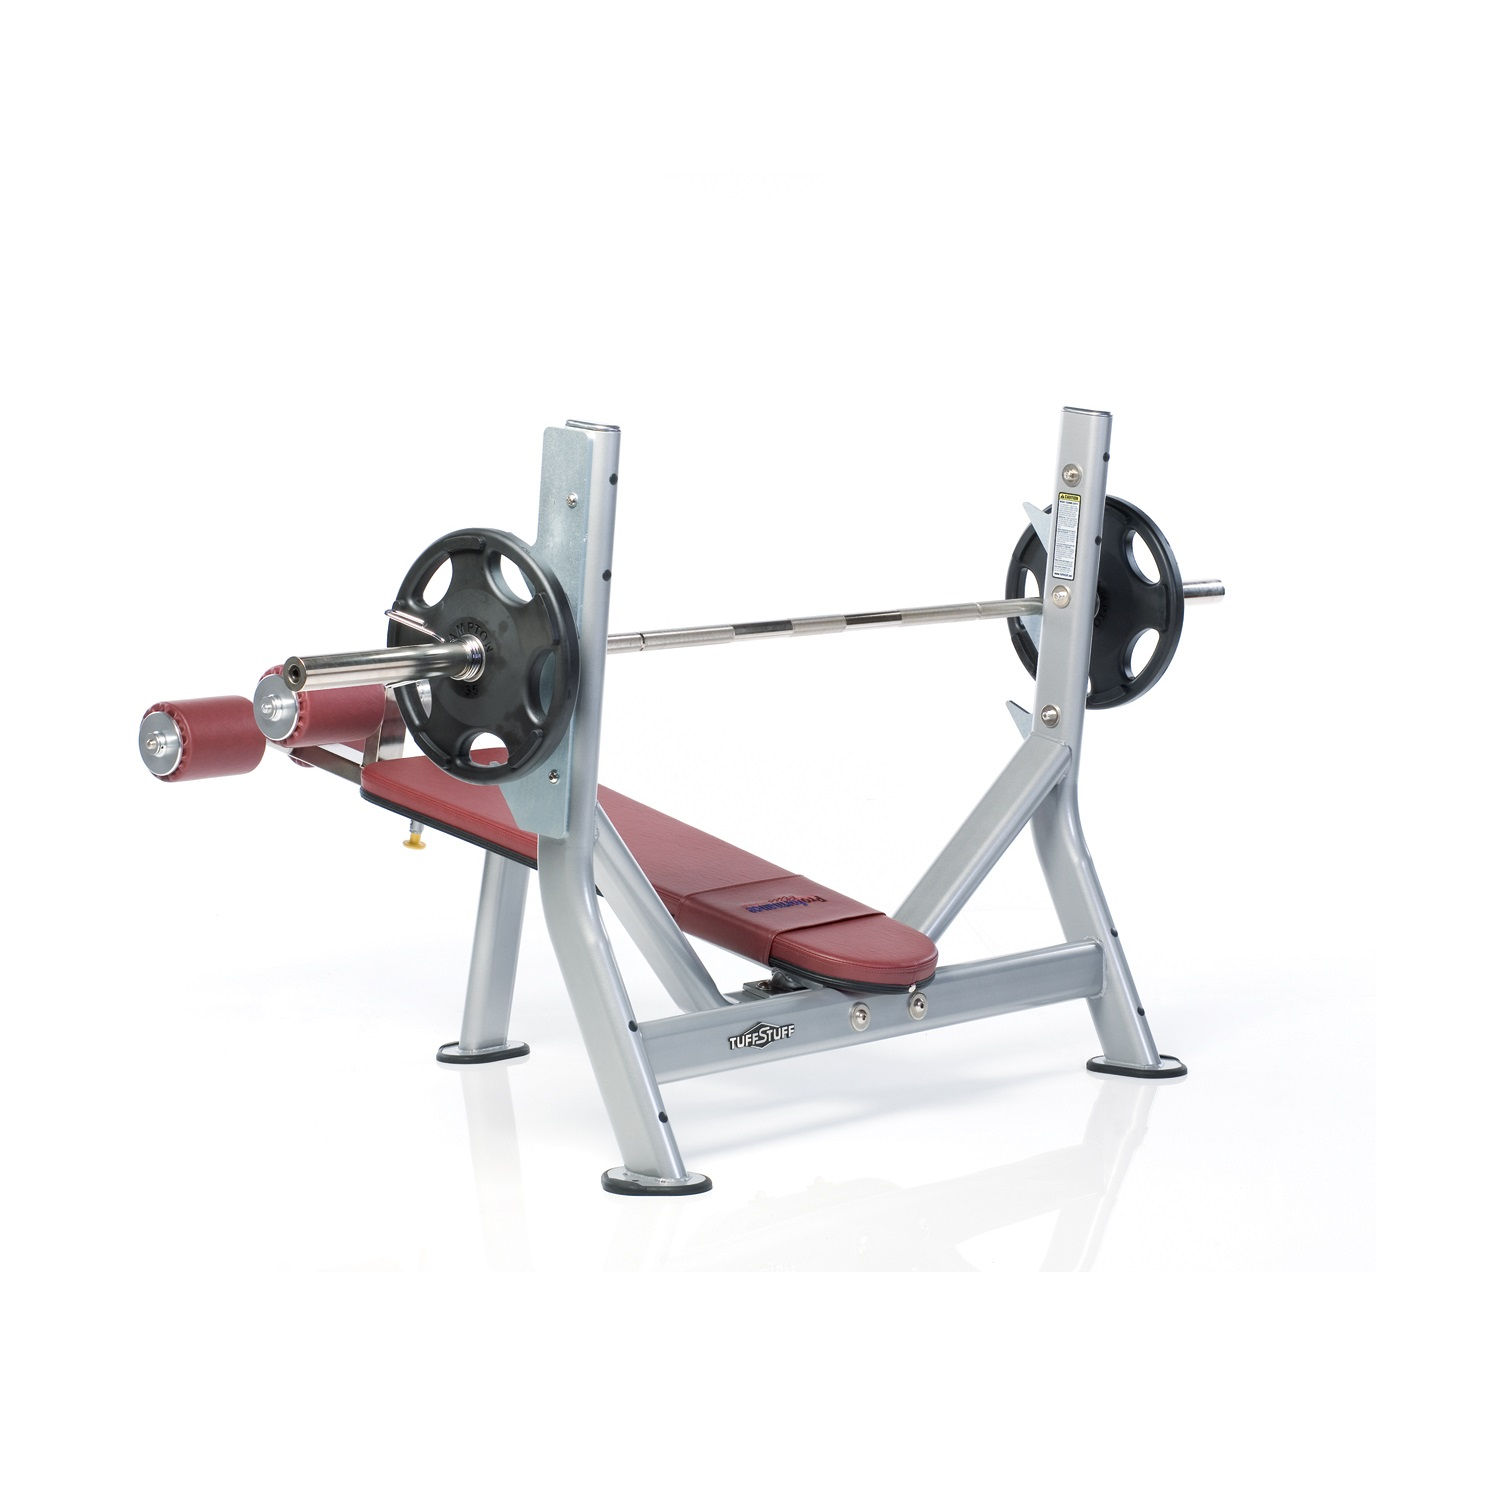 PPF-709 Olympic Decline Bench